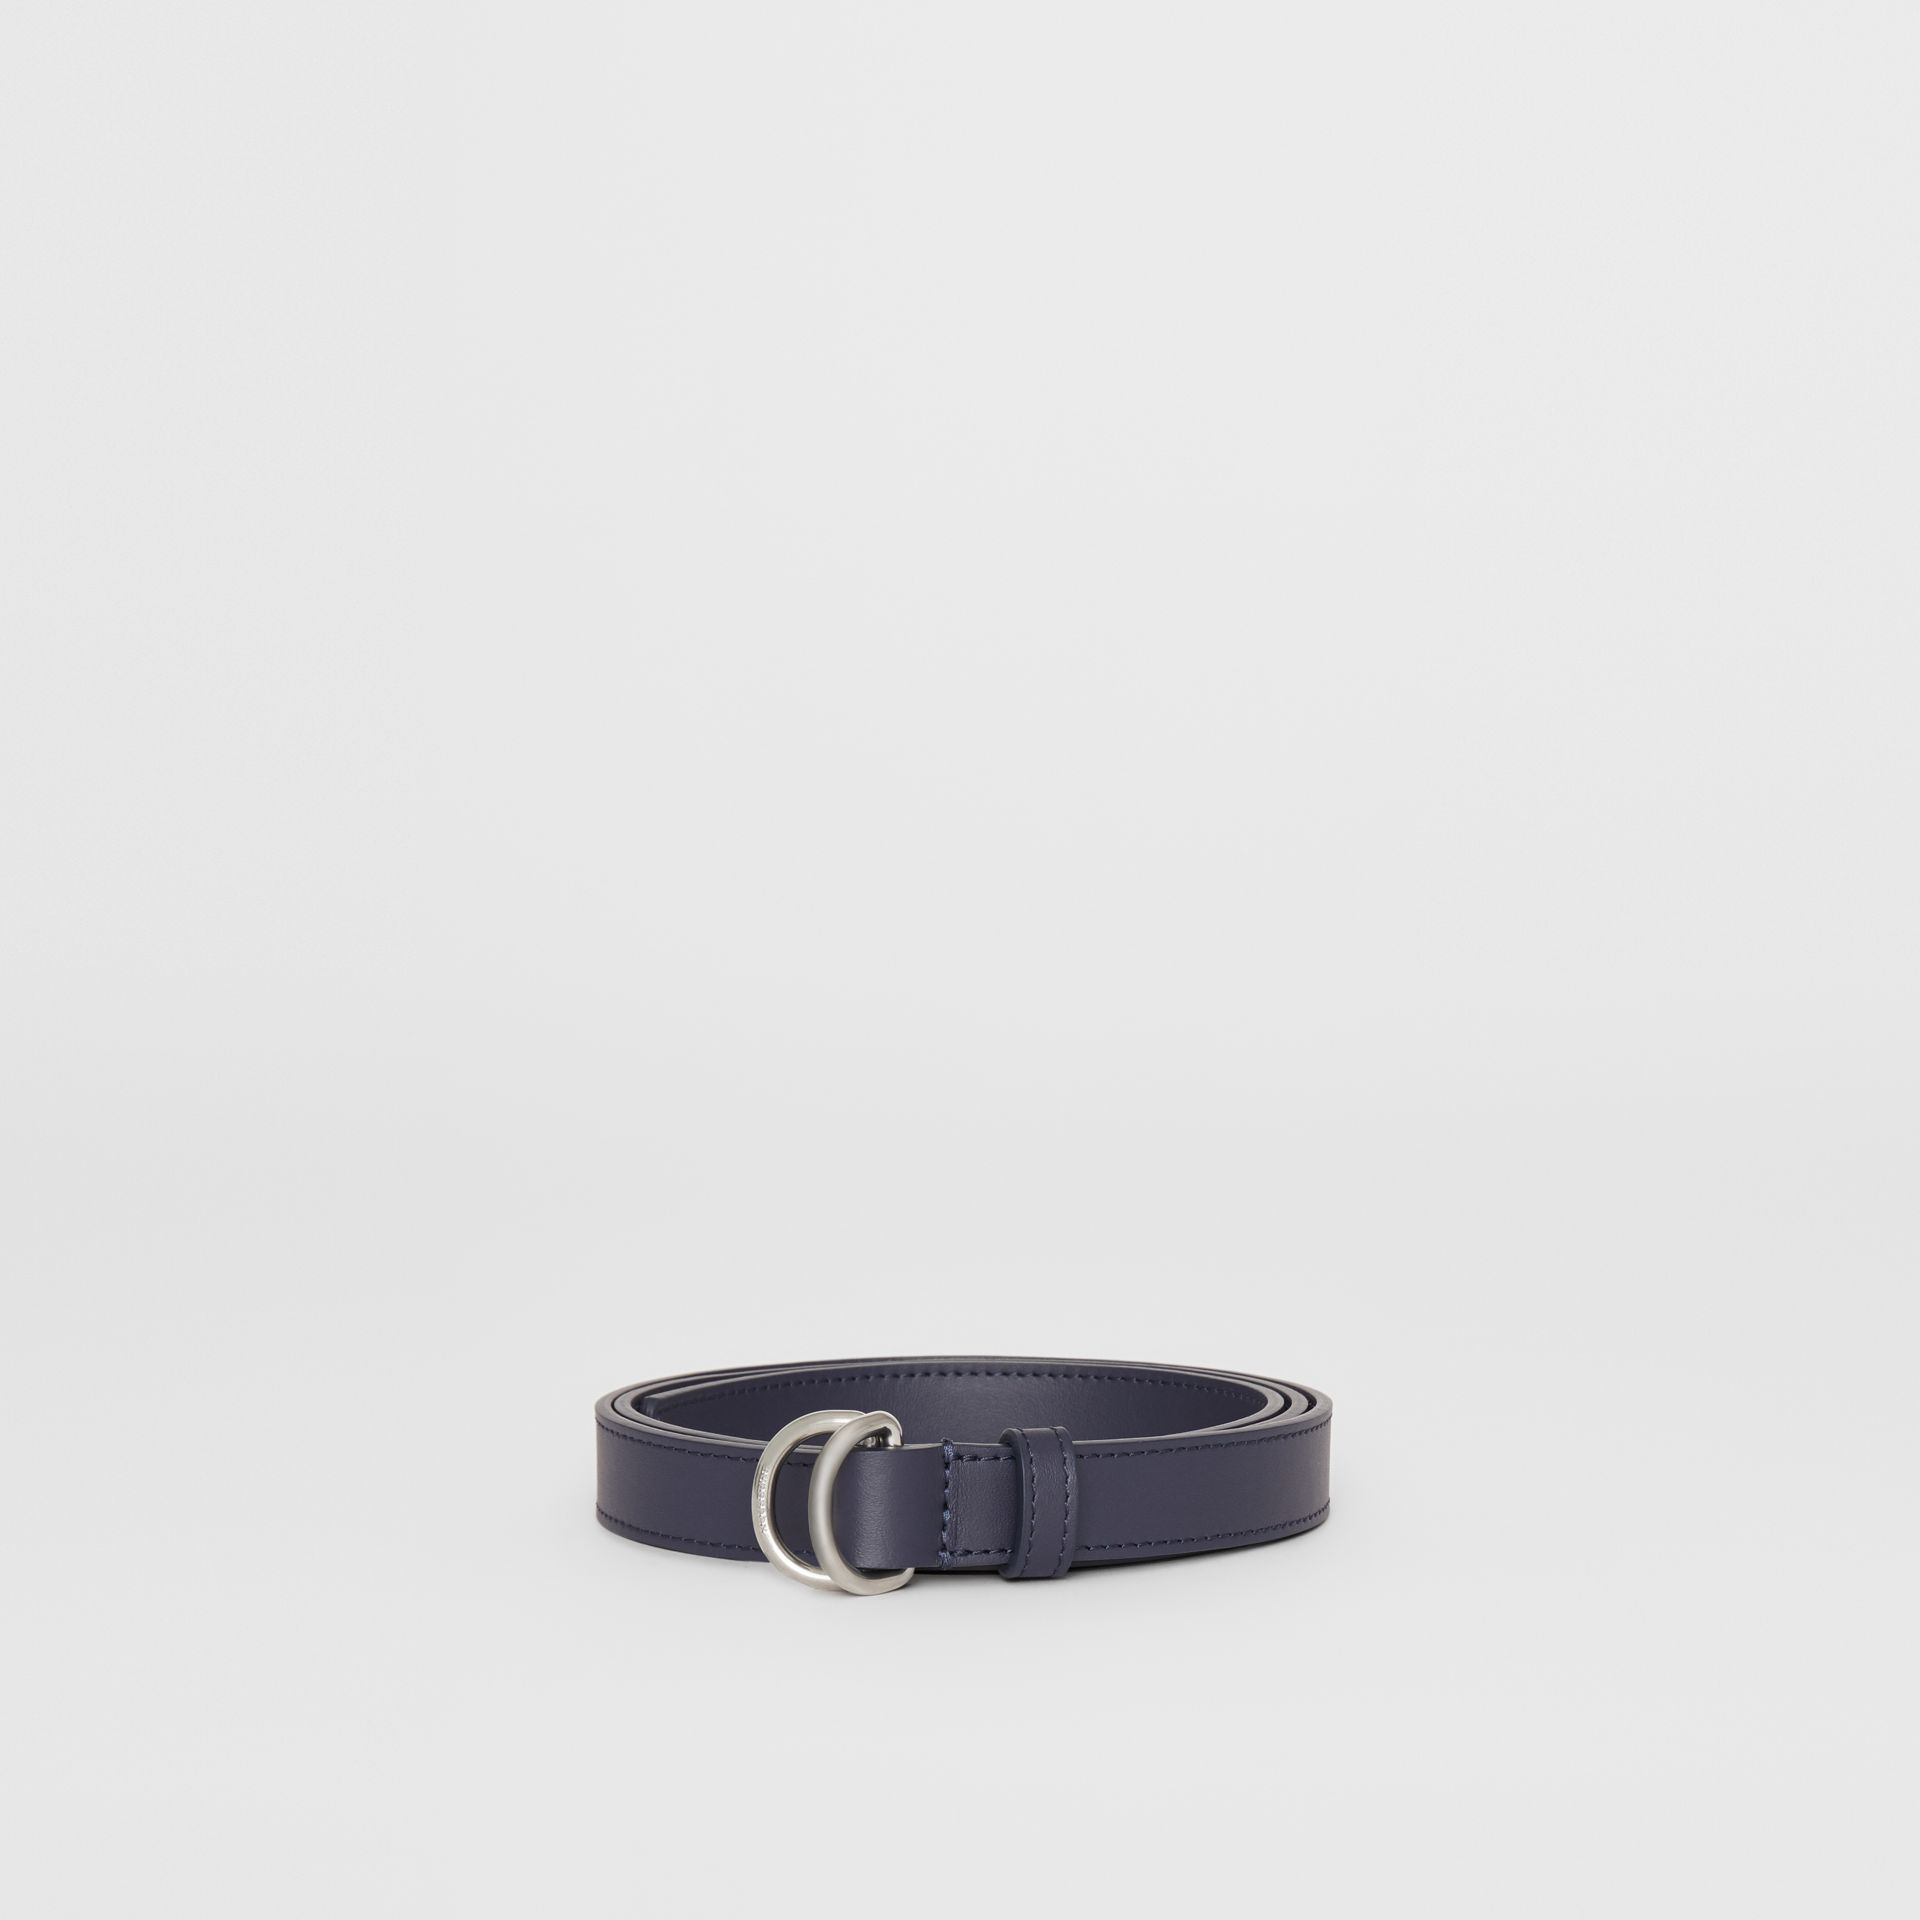 Slim Leather Double D-ring Belt in Regency Blue - Women | Burberry - gallery image 3